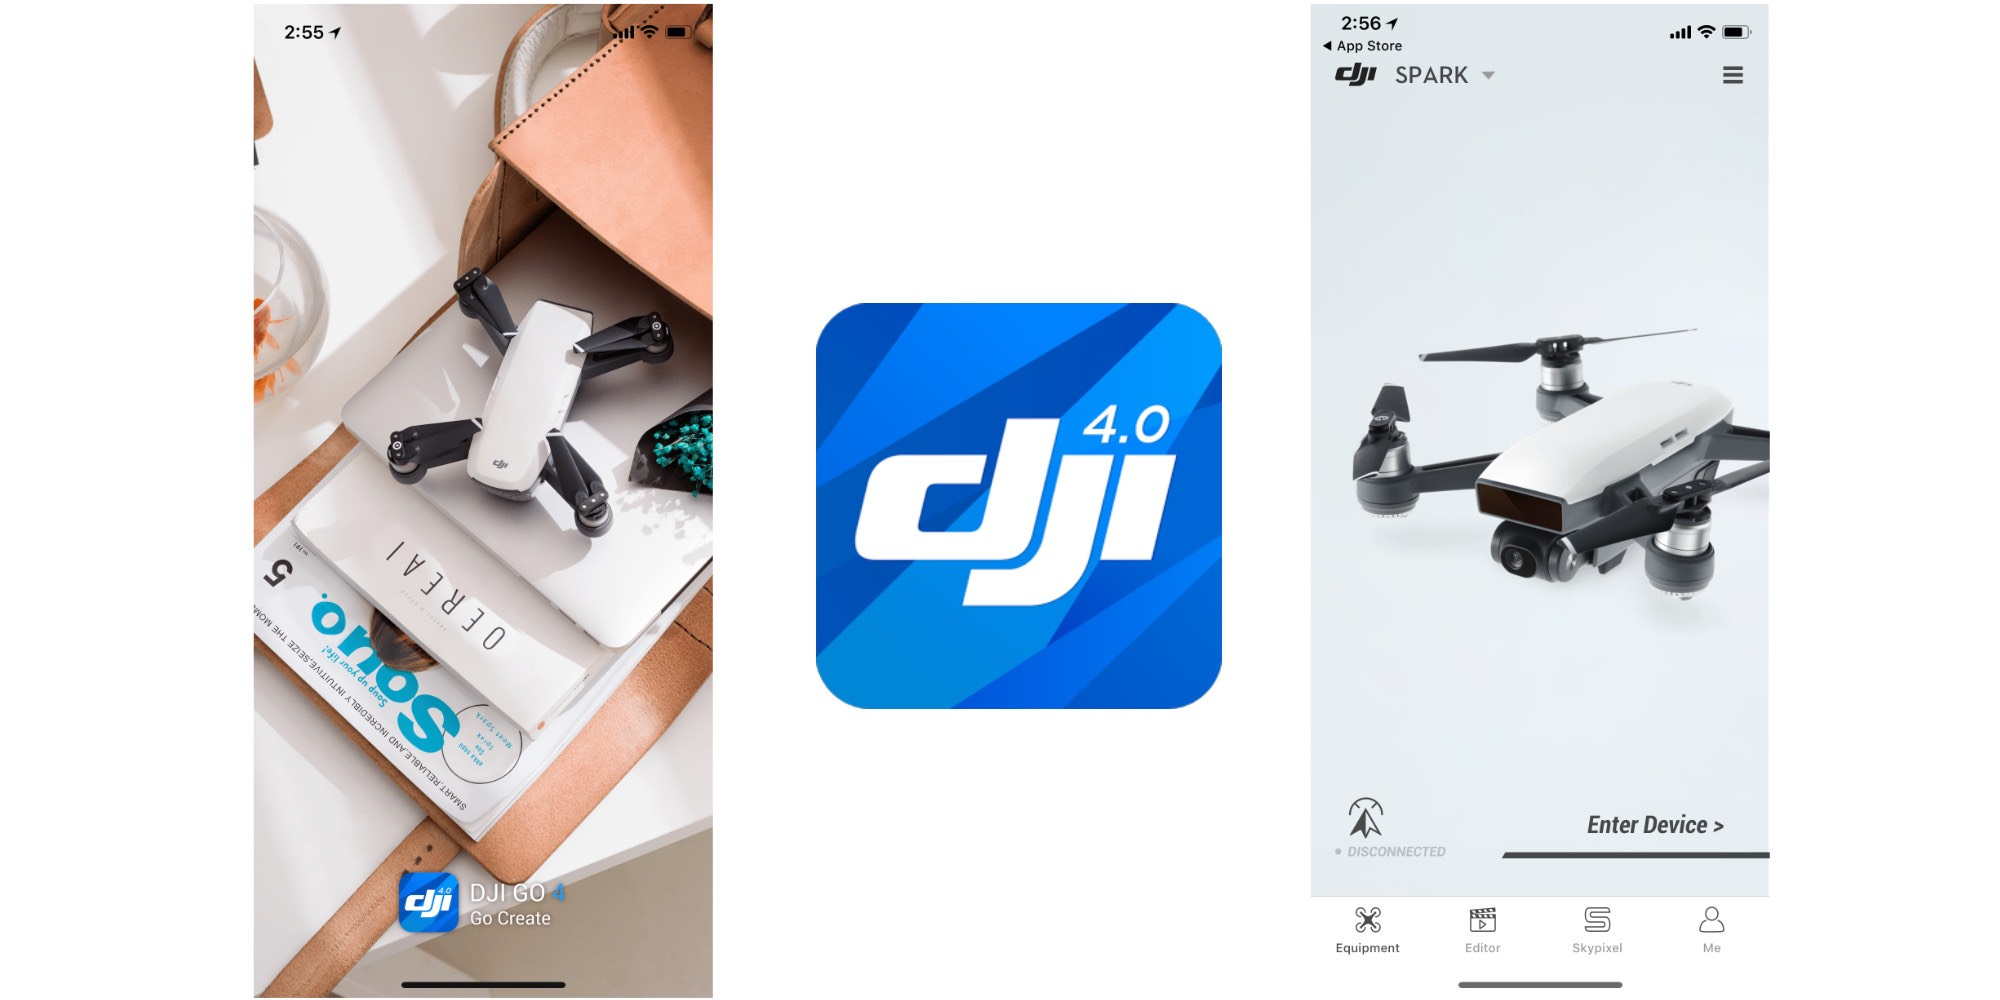 DJI app gets updated for iPhone X, brings updates for Spark